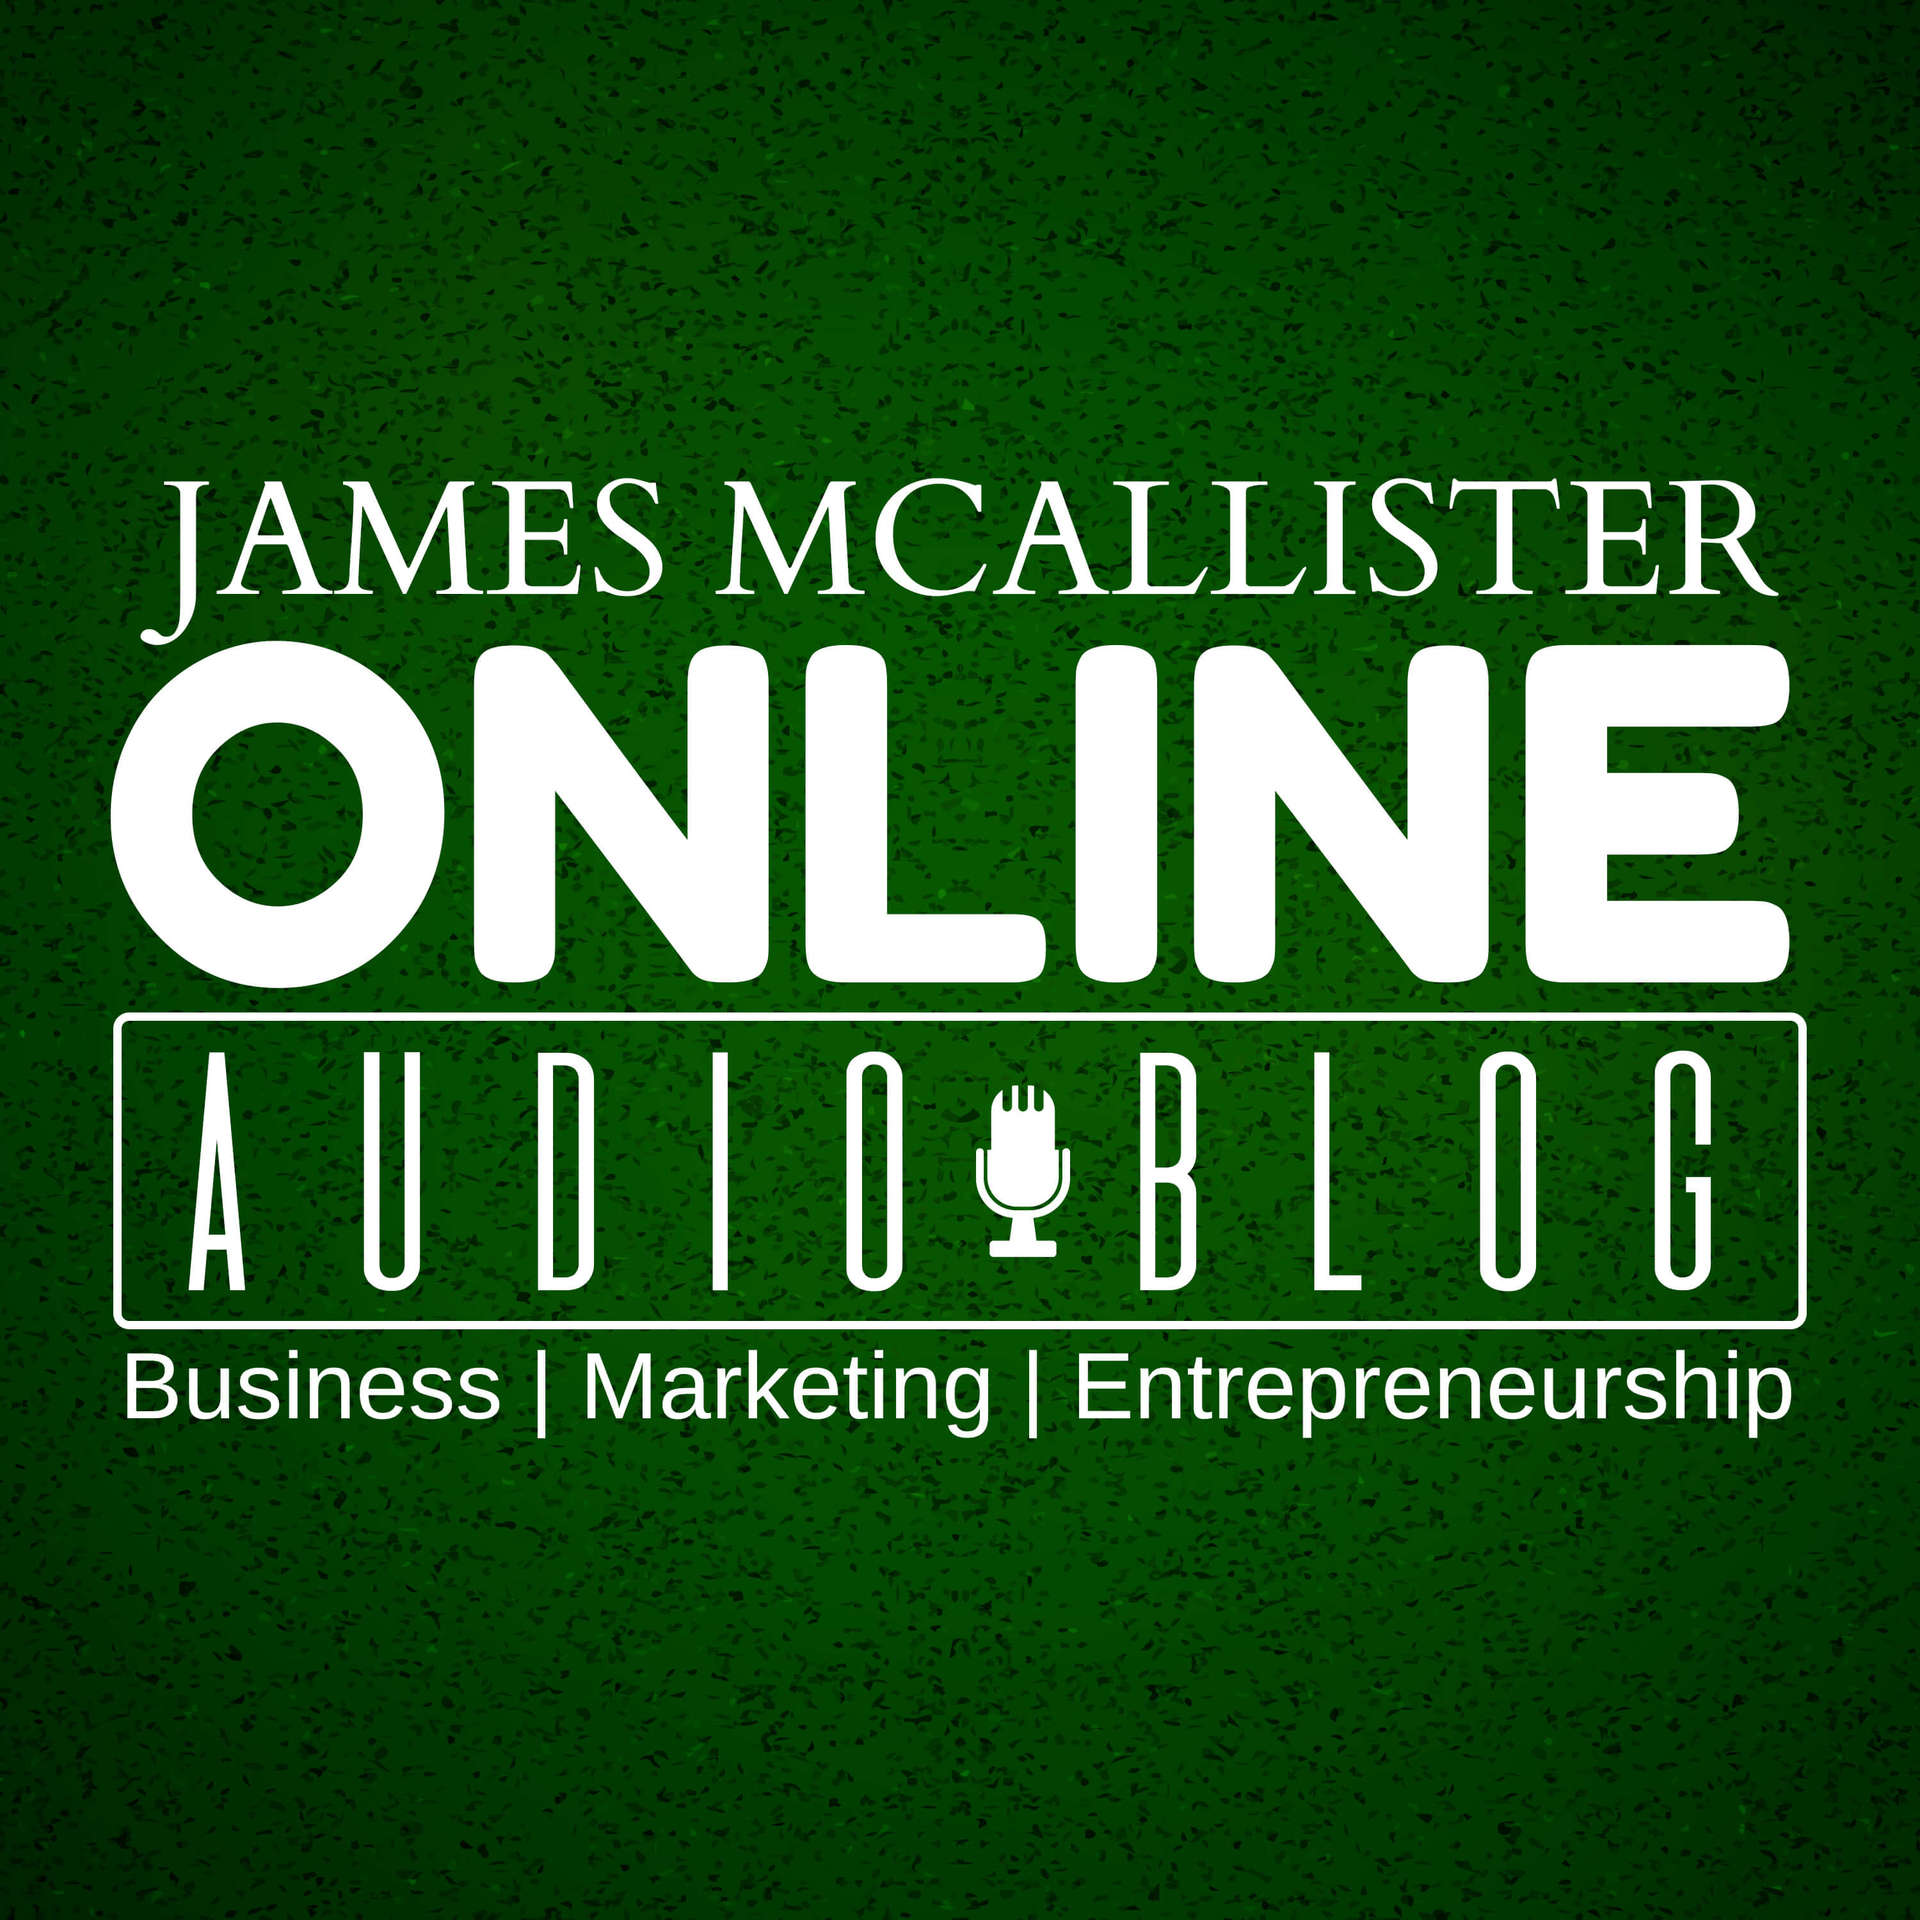 James McAllister Online Audio Blog - Business, Marketing, Entrepreneurship